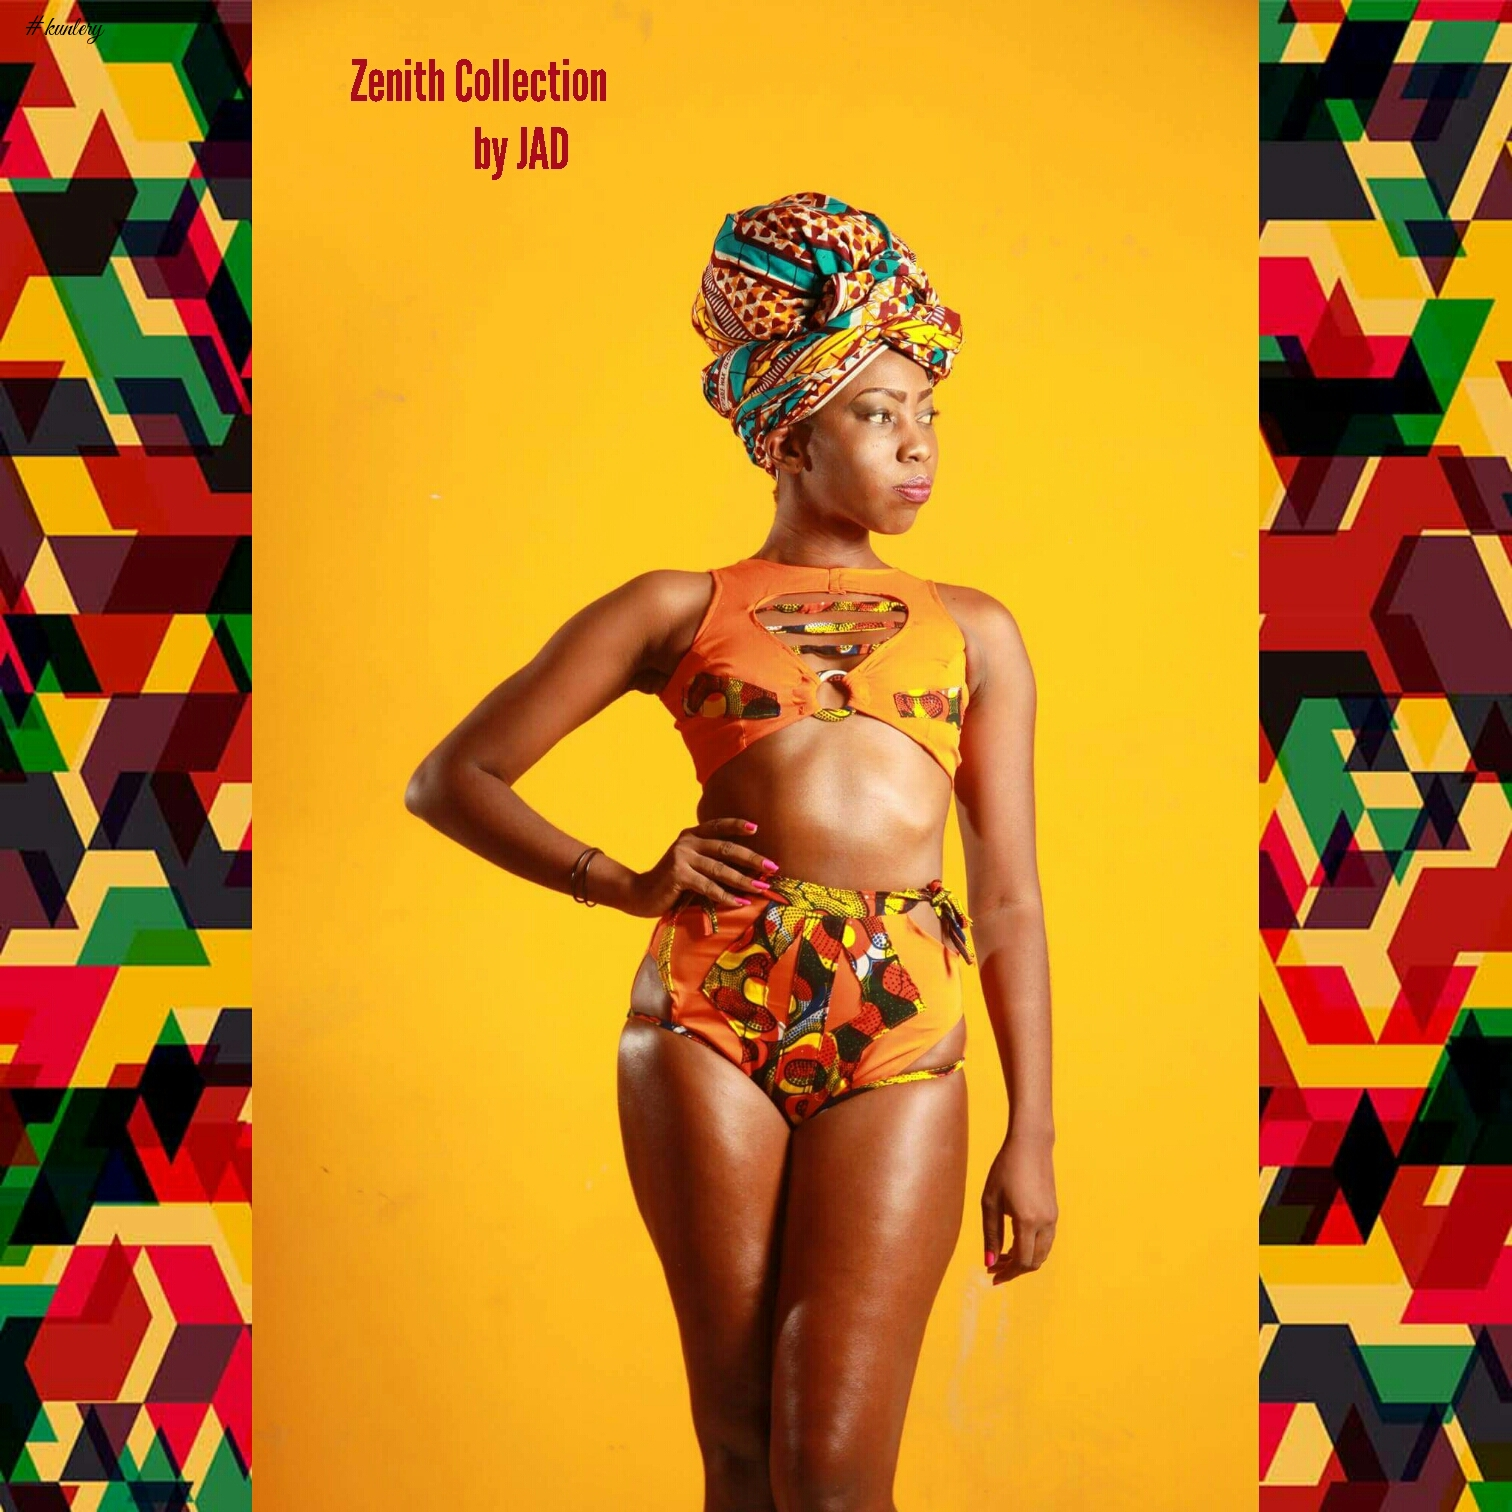 Senegalese Designer Brand JAD Presents The First Part Of It's Zenith Swimwear Collection